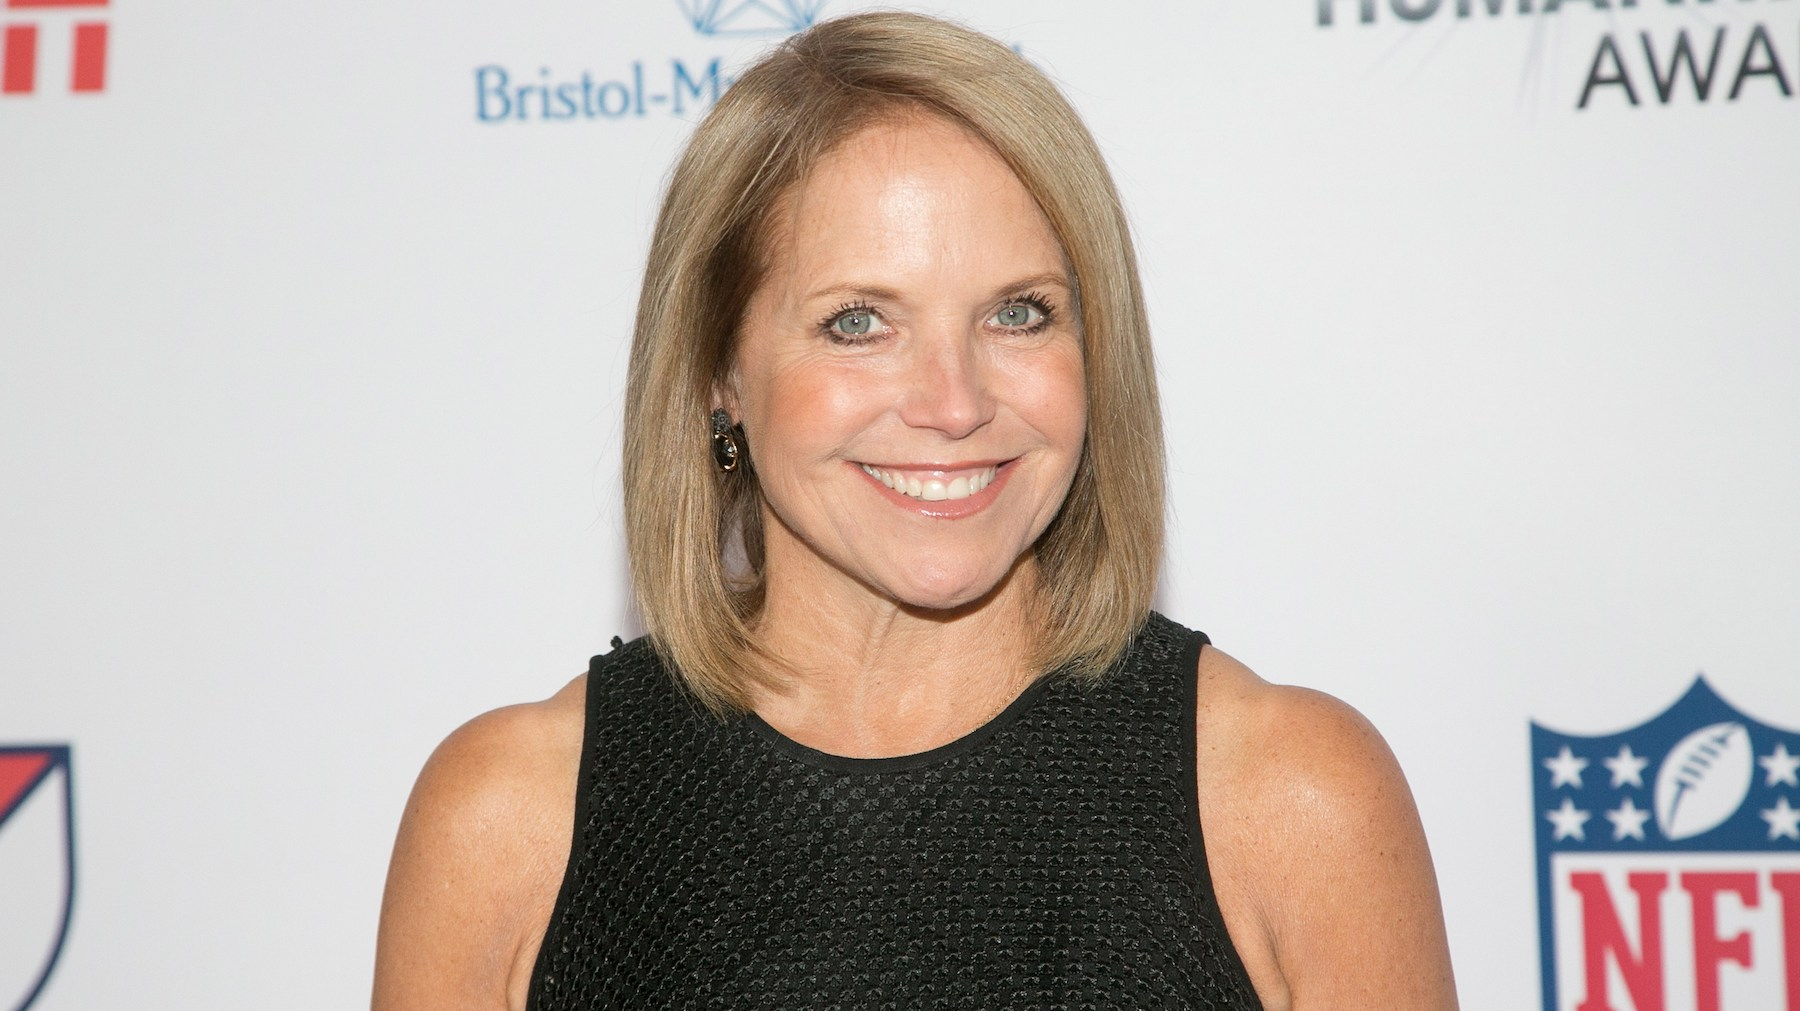 Katie Couric Leaving Yahoo and Reported $10 Million Salary